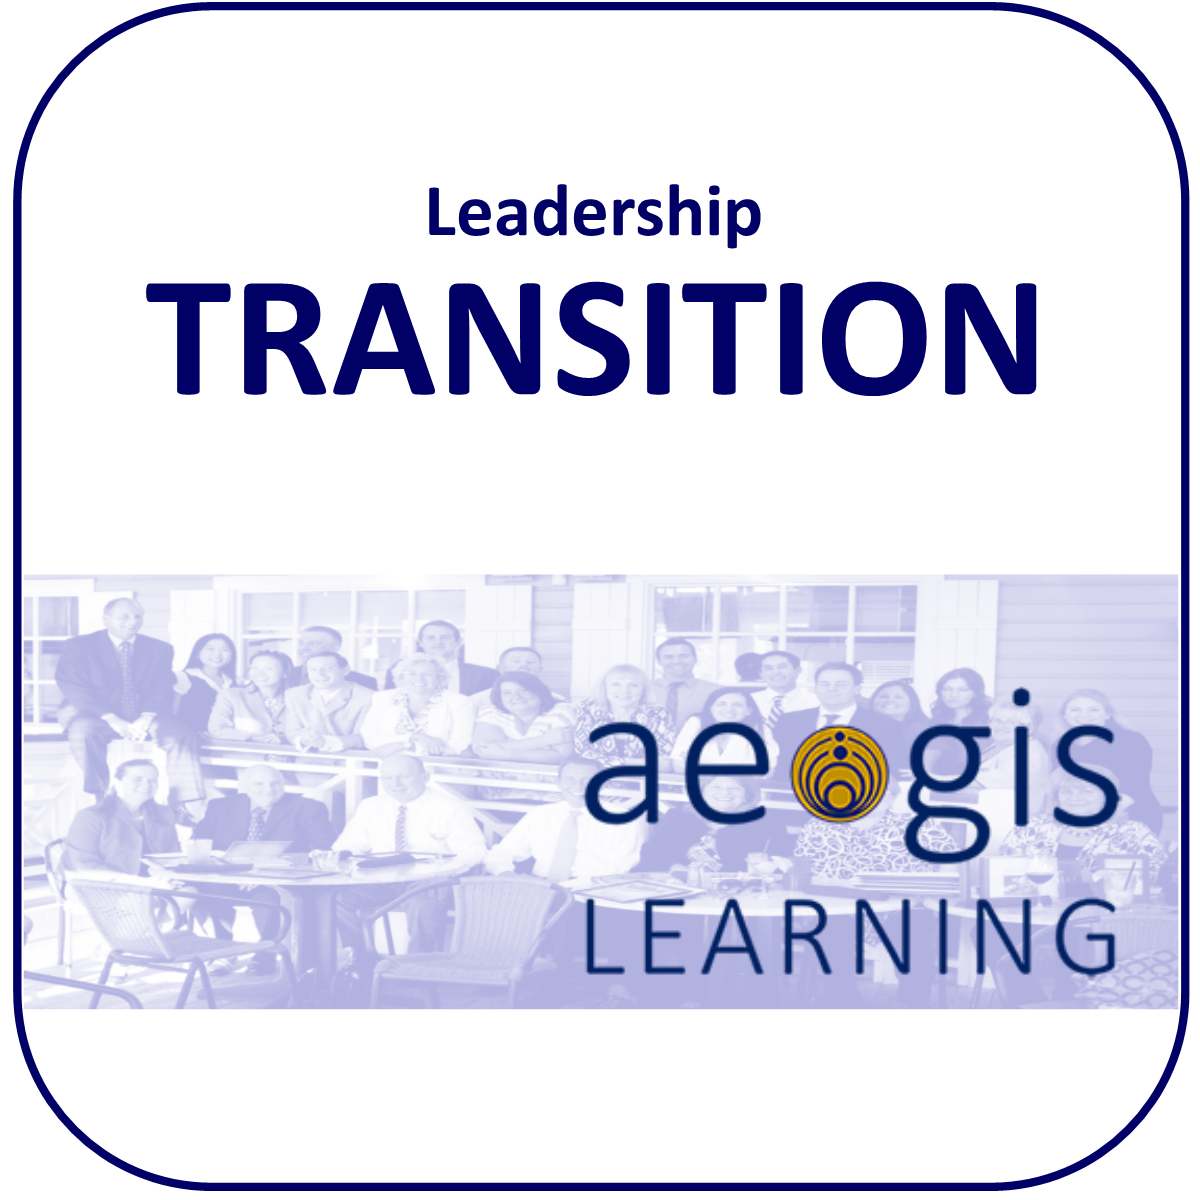 Leadership Transition from Aegis Learning